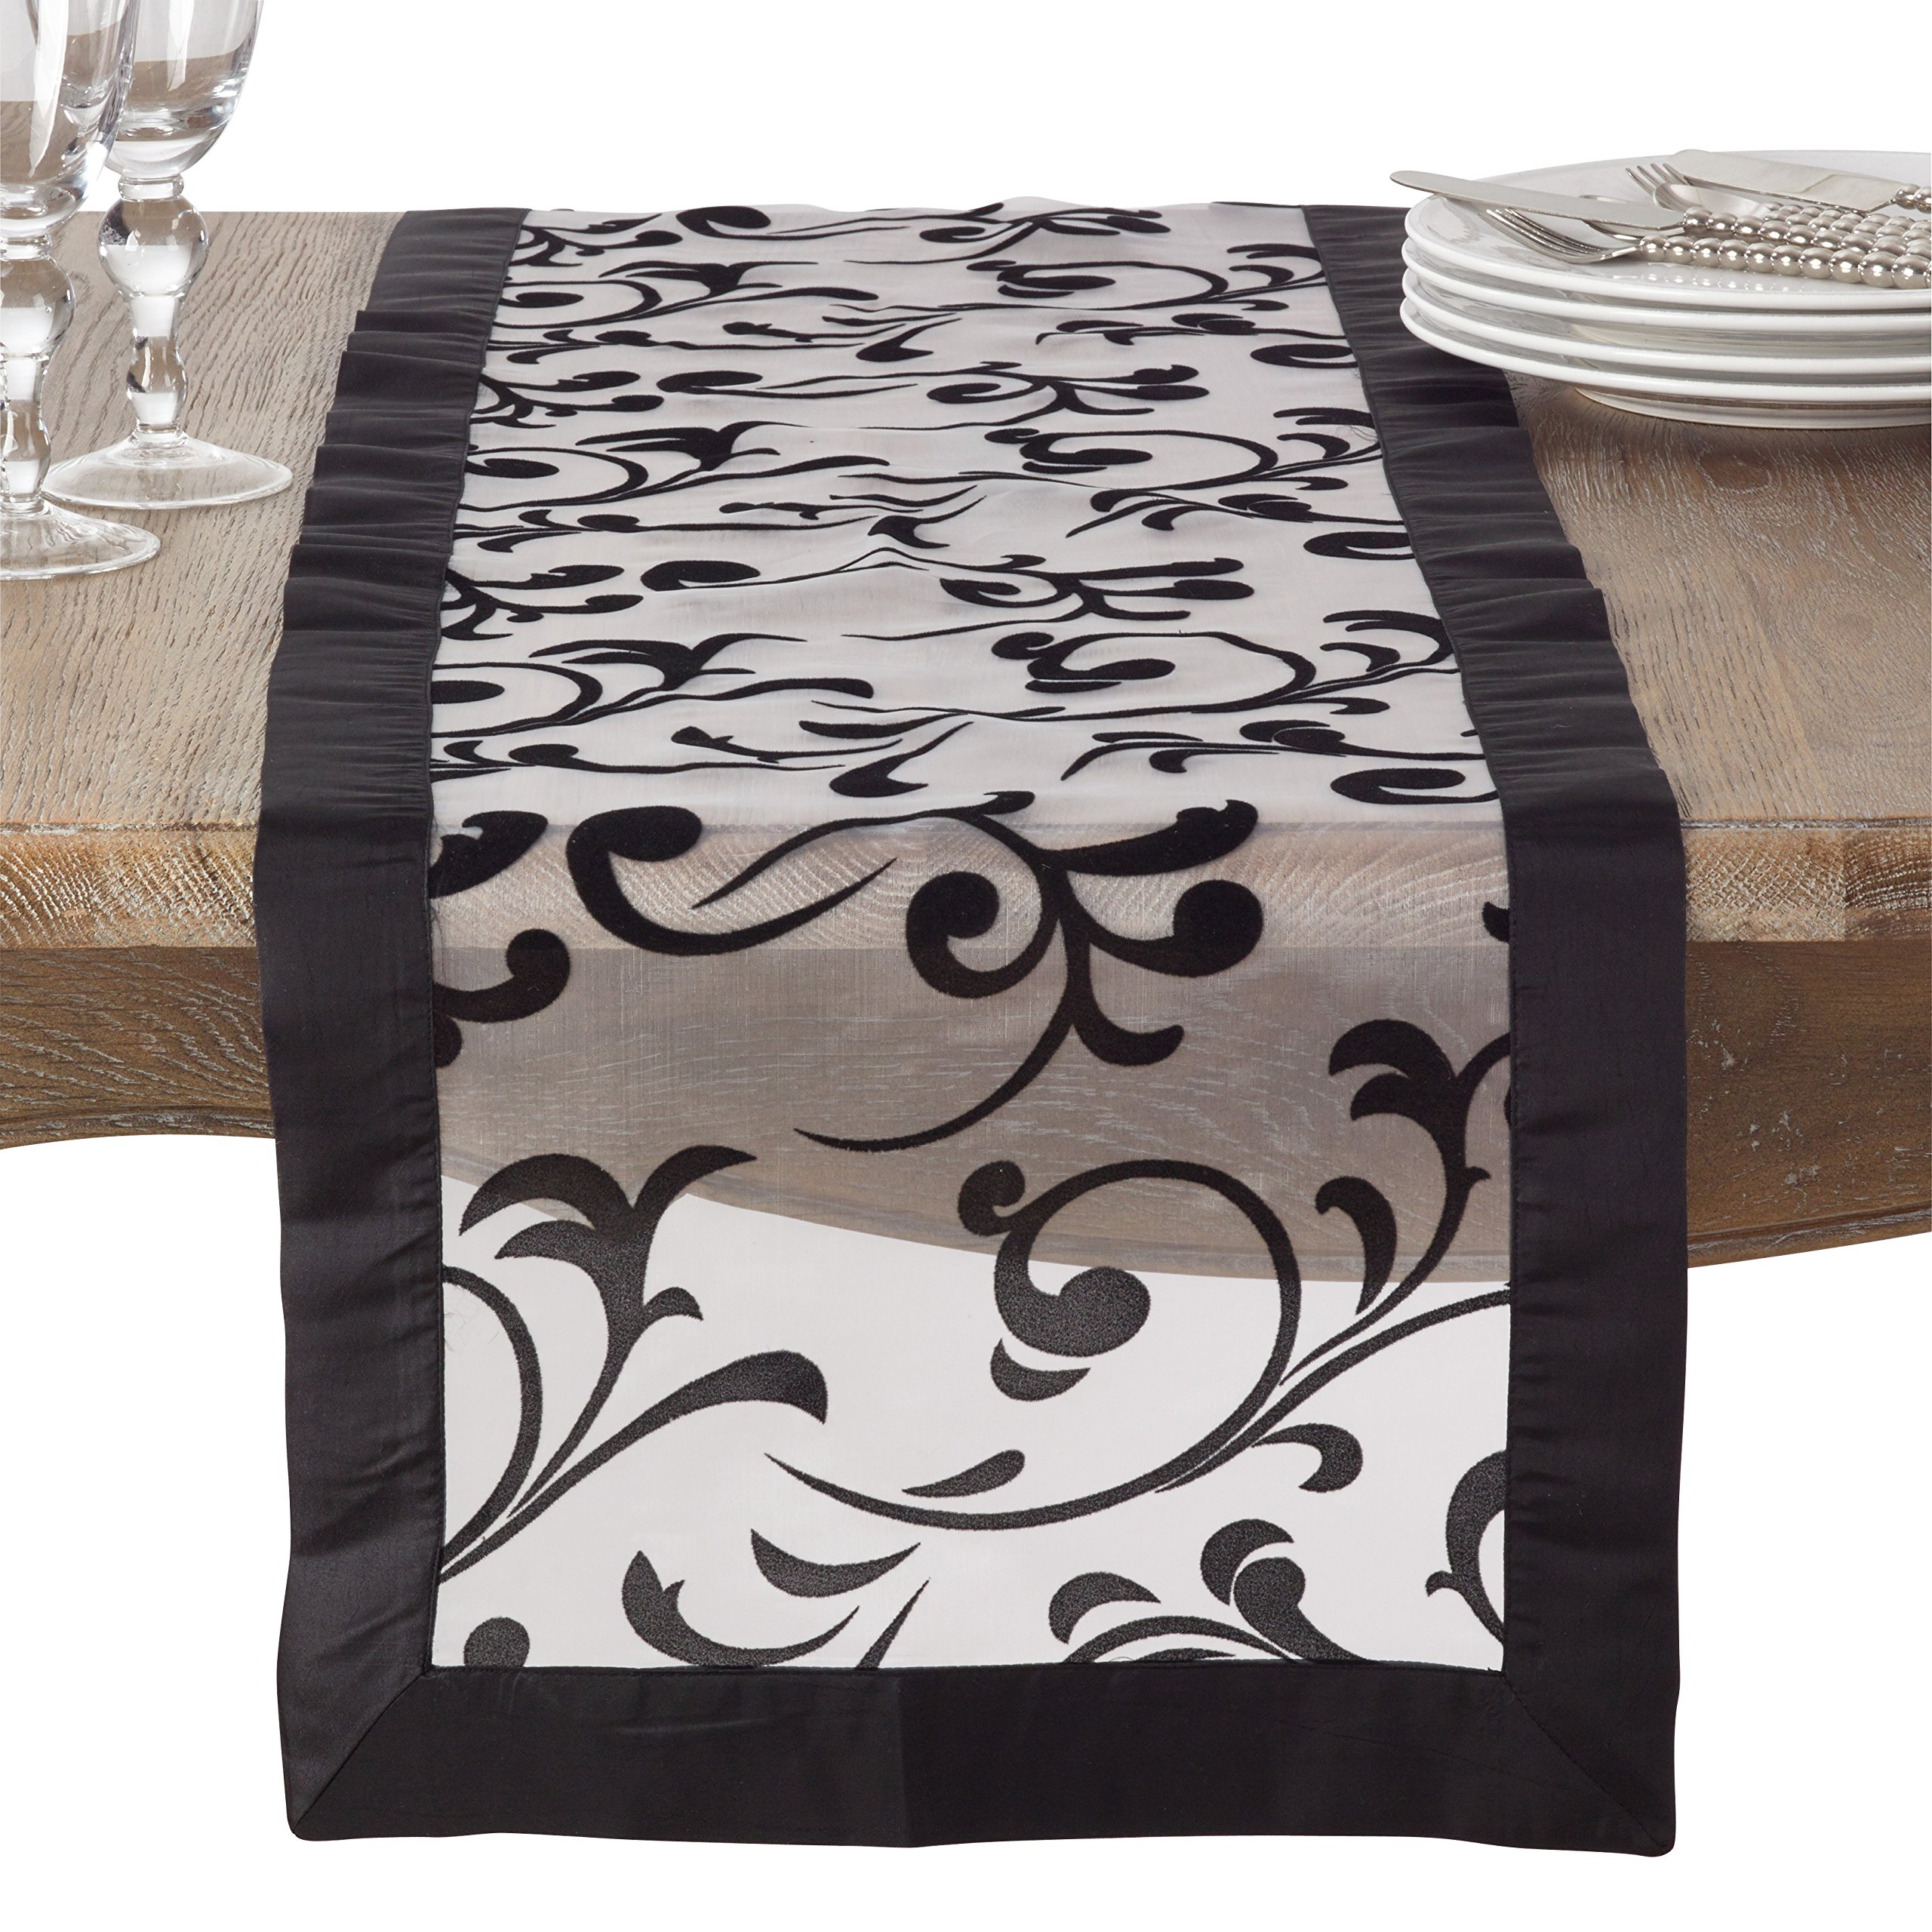 SARO LIFESTYLE Flocked Design Satin Border Sheer Table Runner, 16'' x 72'', Black